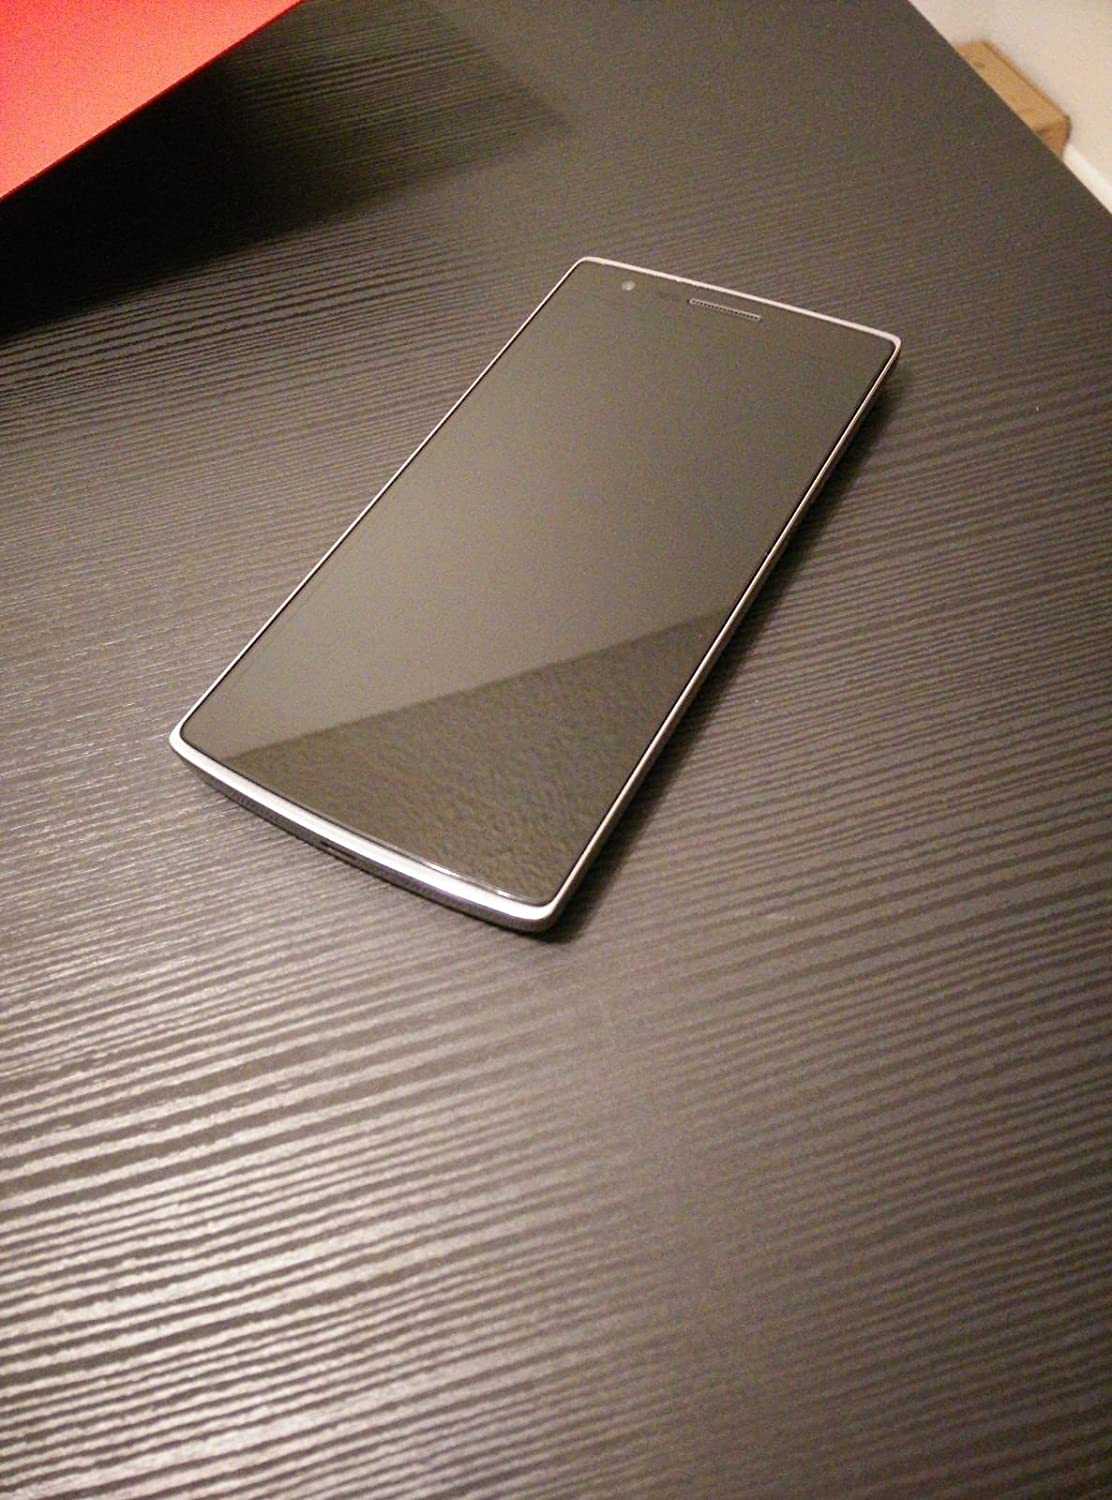 OnePlus One Review - The Real Flagship Killer